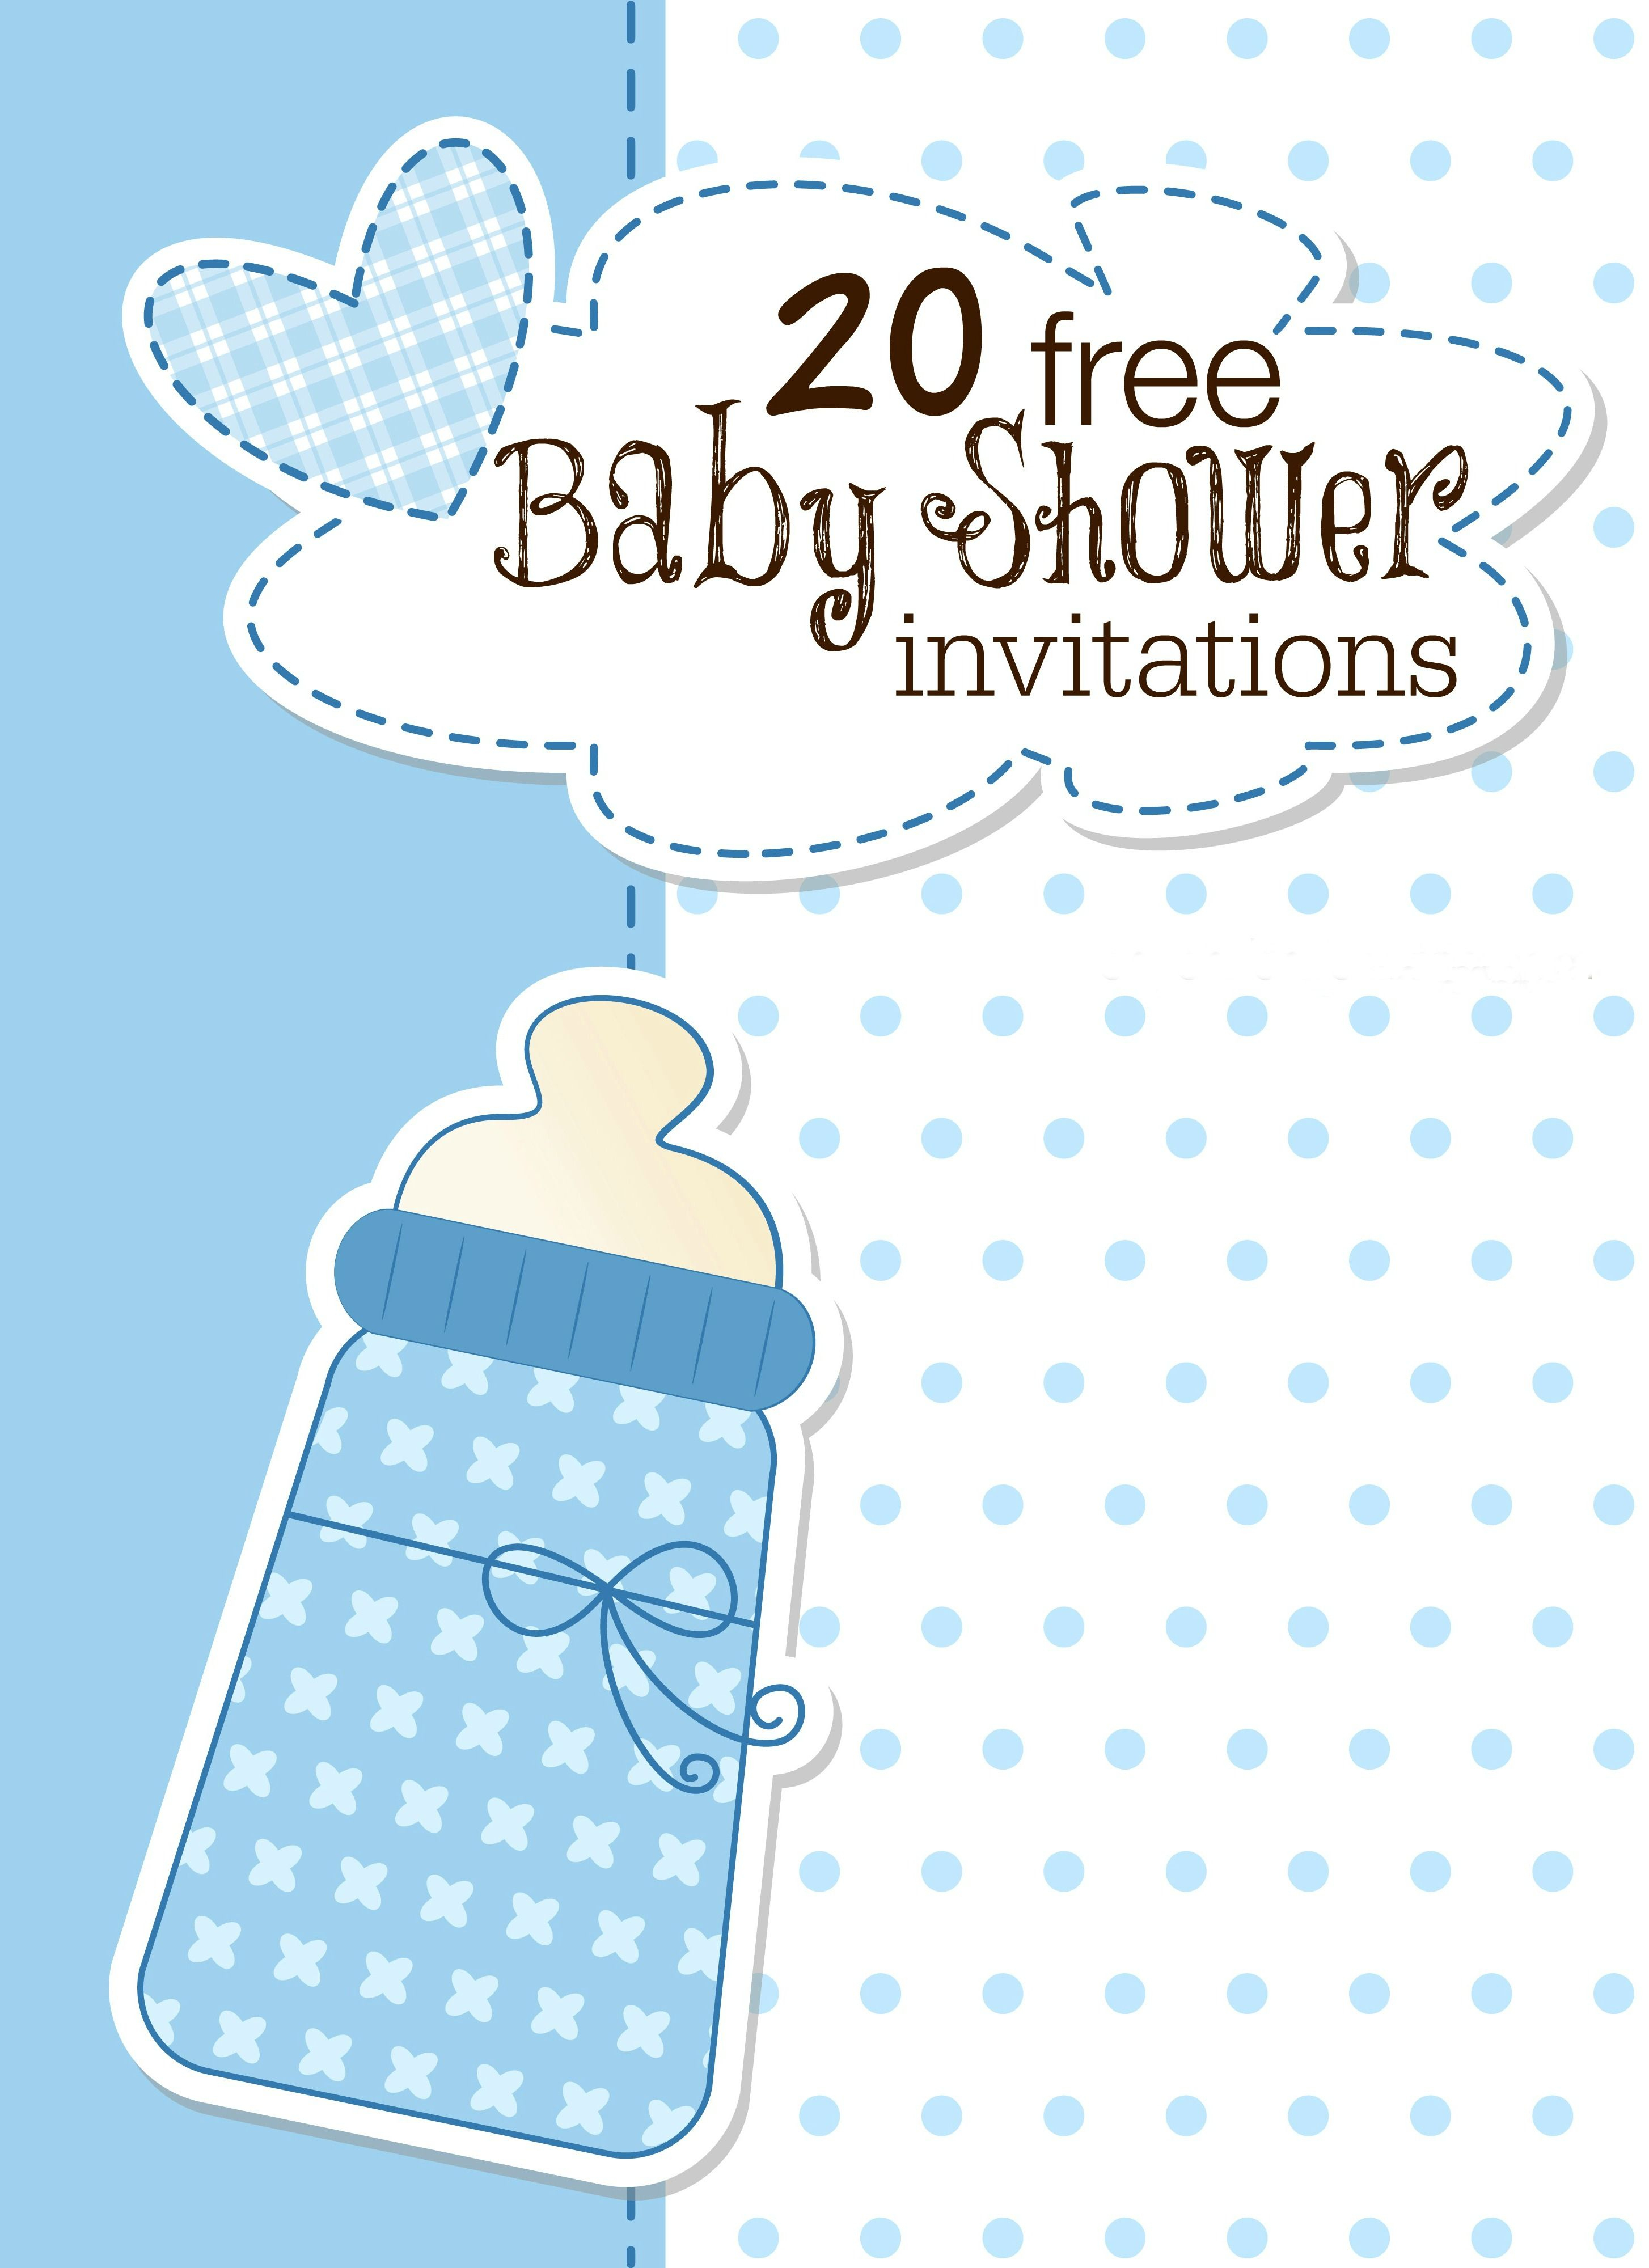 Are You Planning A Baby Shower? You'll Find This List Of Free - Free Baby Boy Shower Invitations Printable